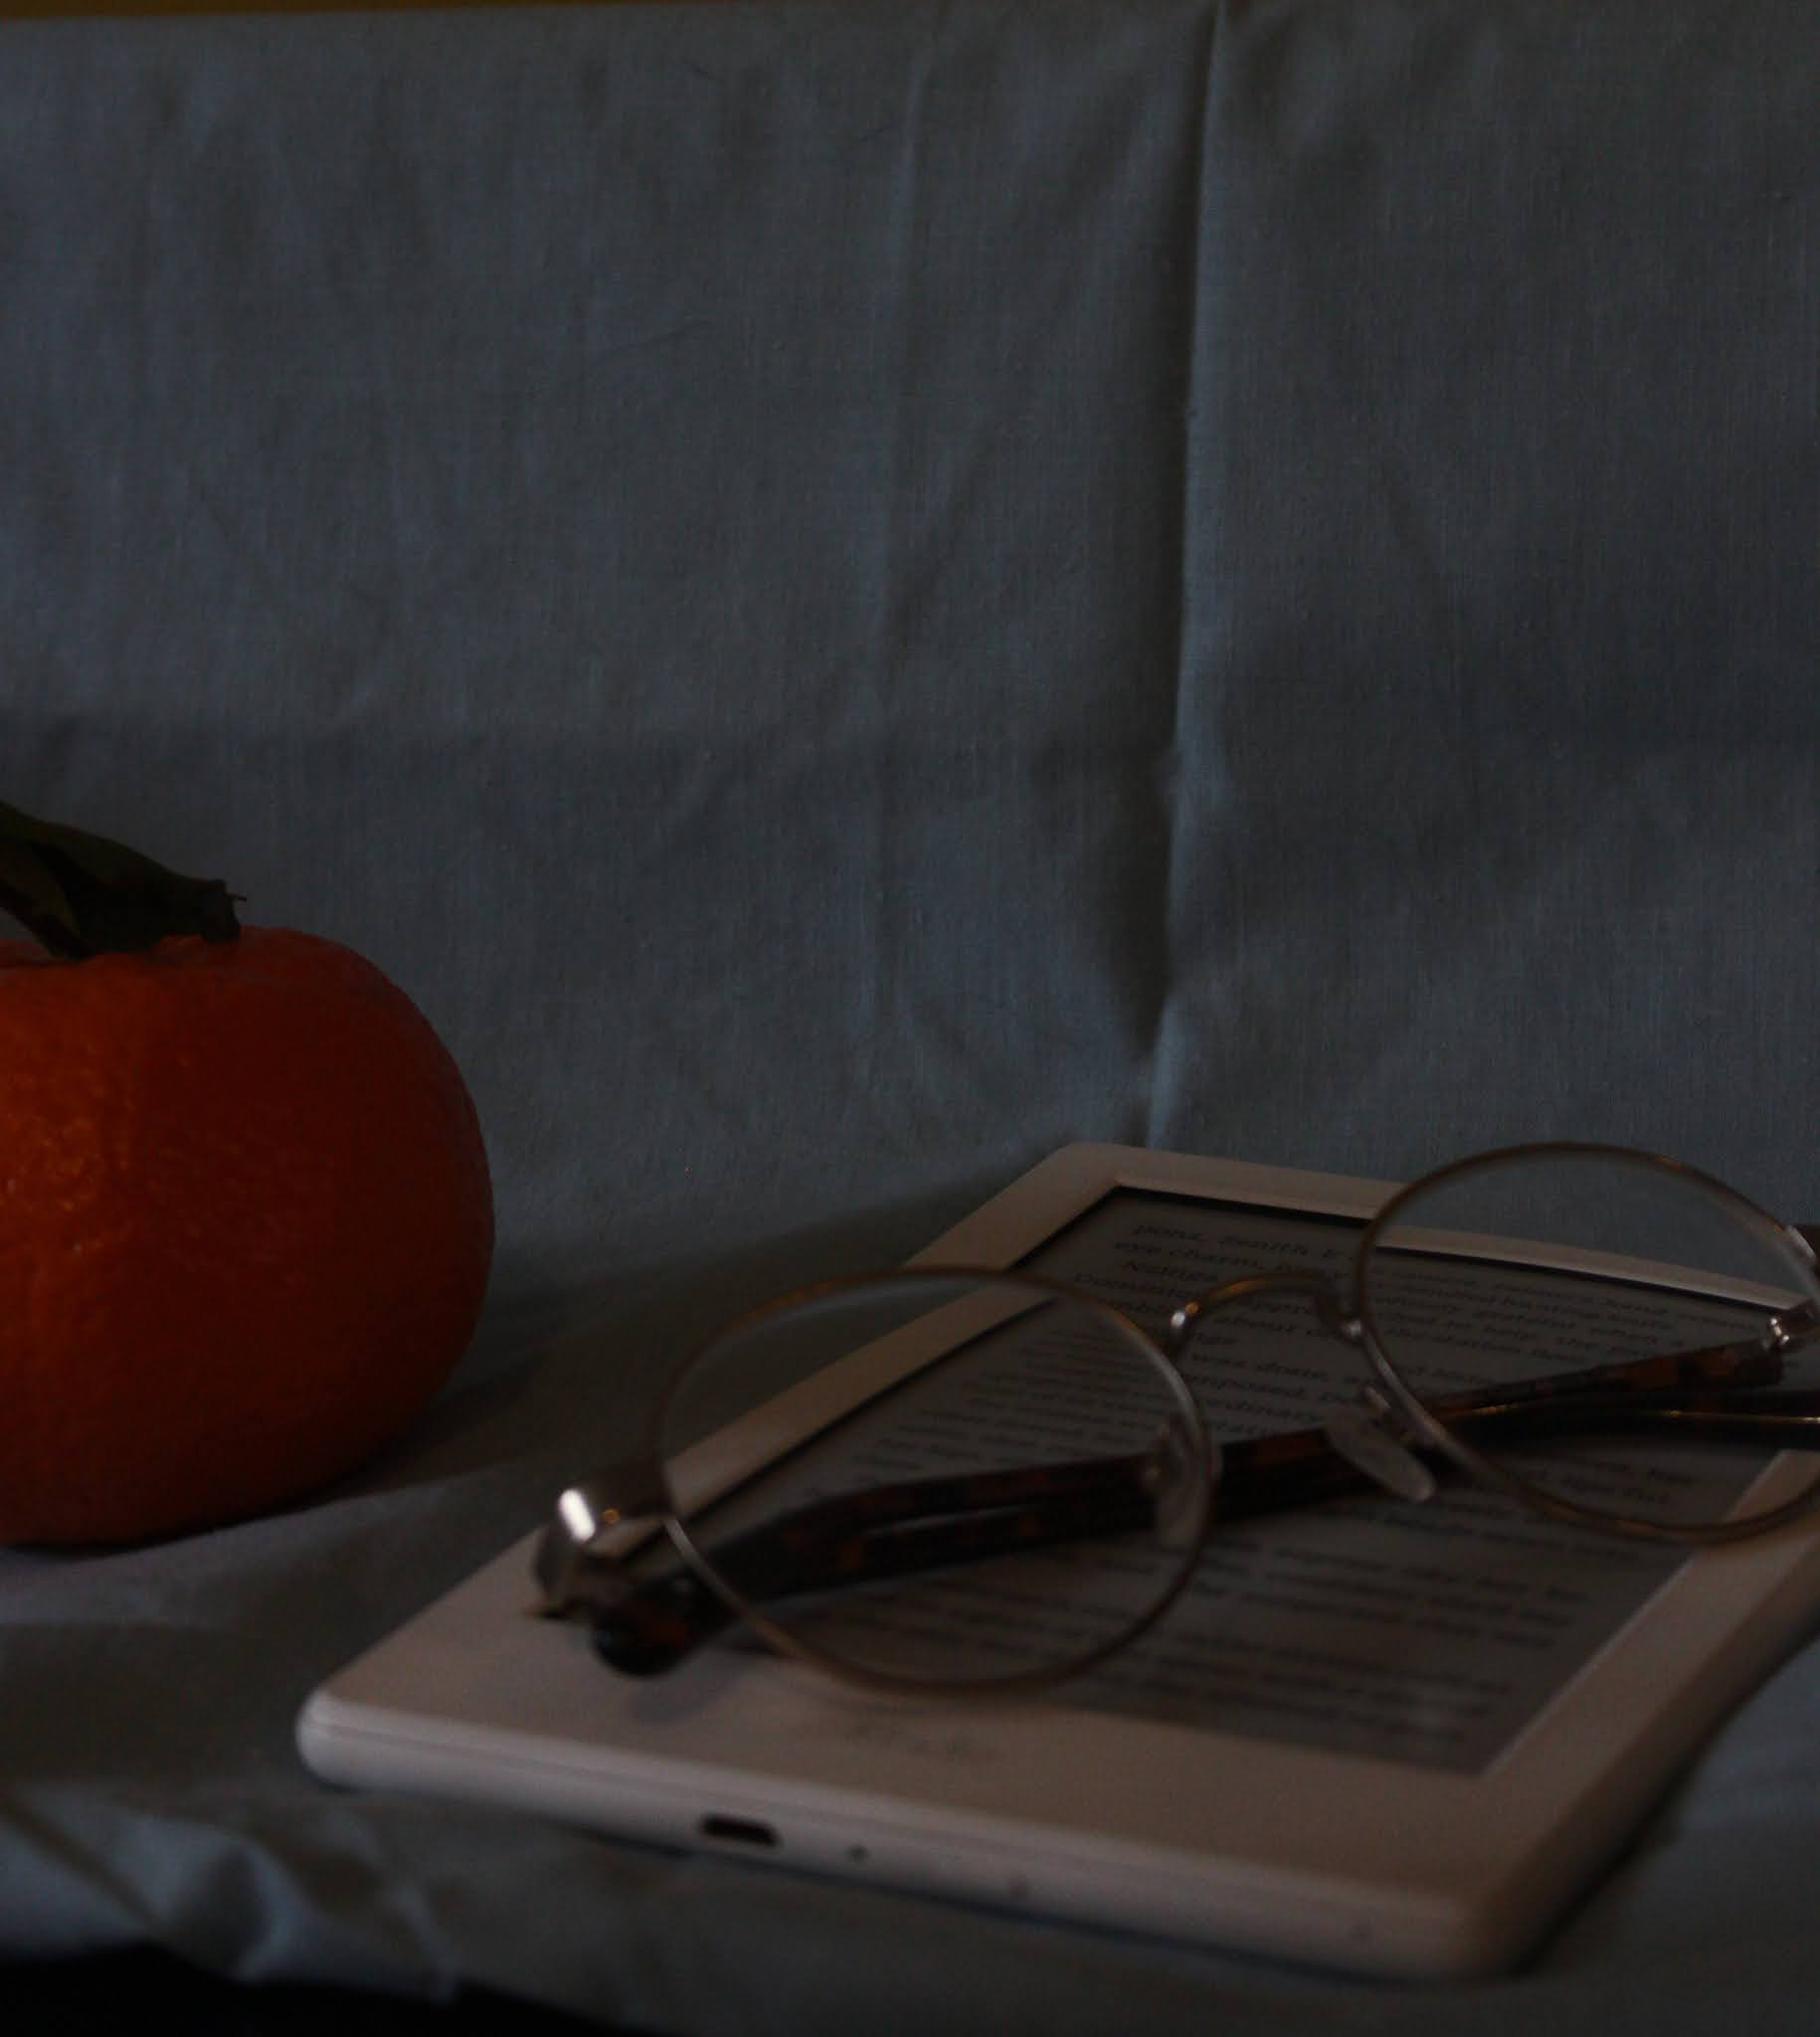 A clementine, white kindle and glasses